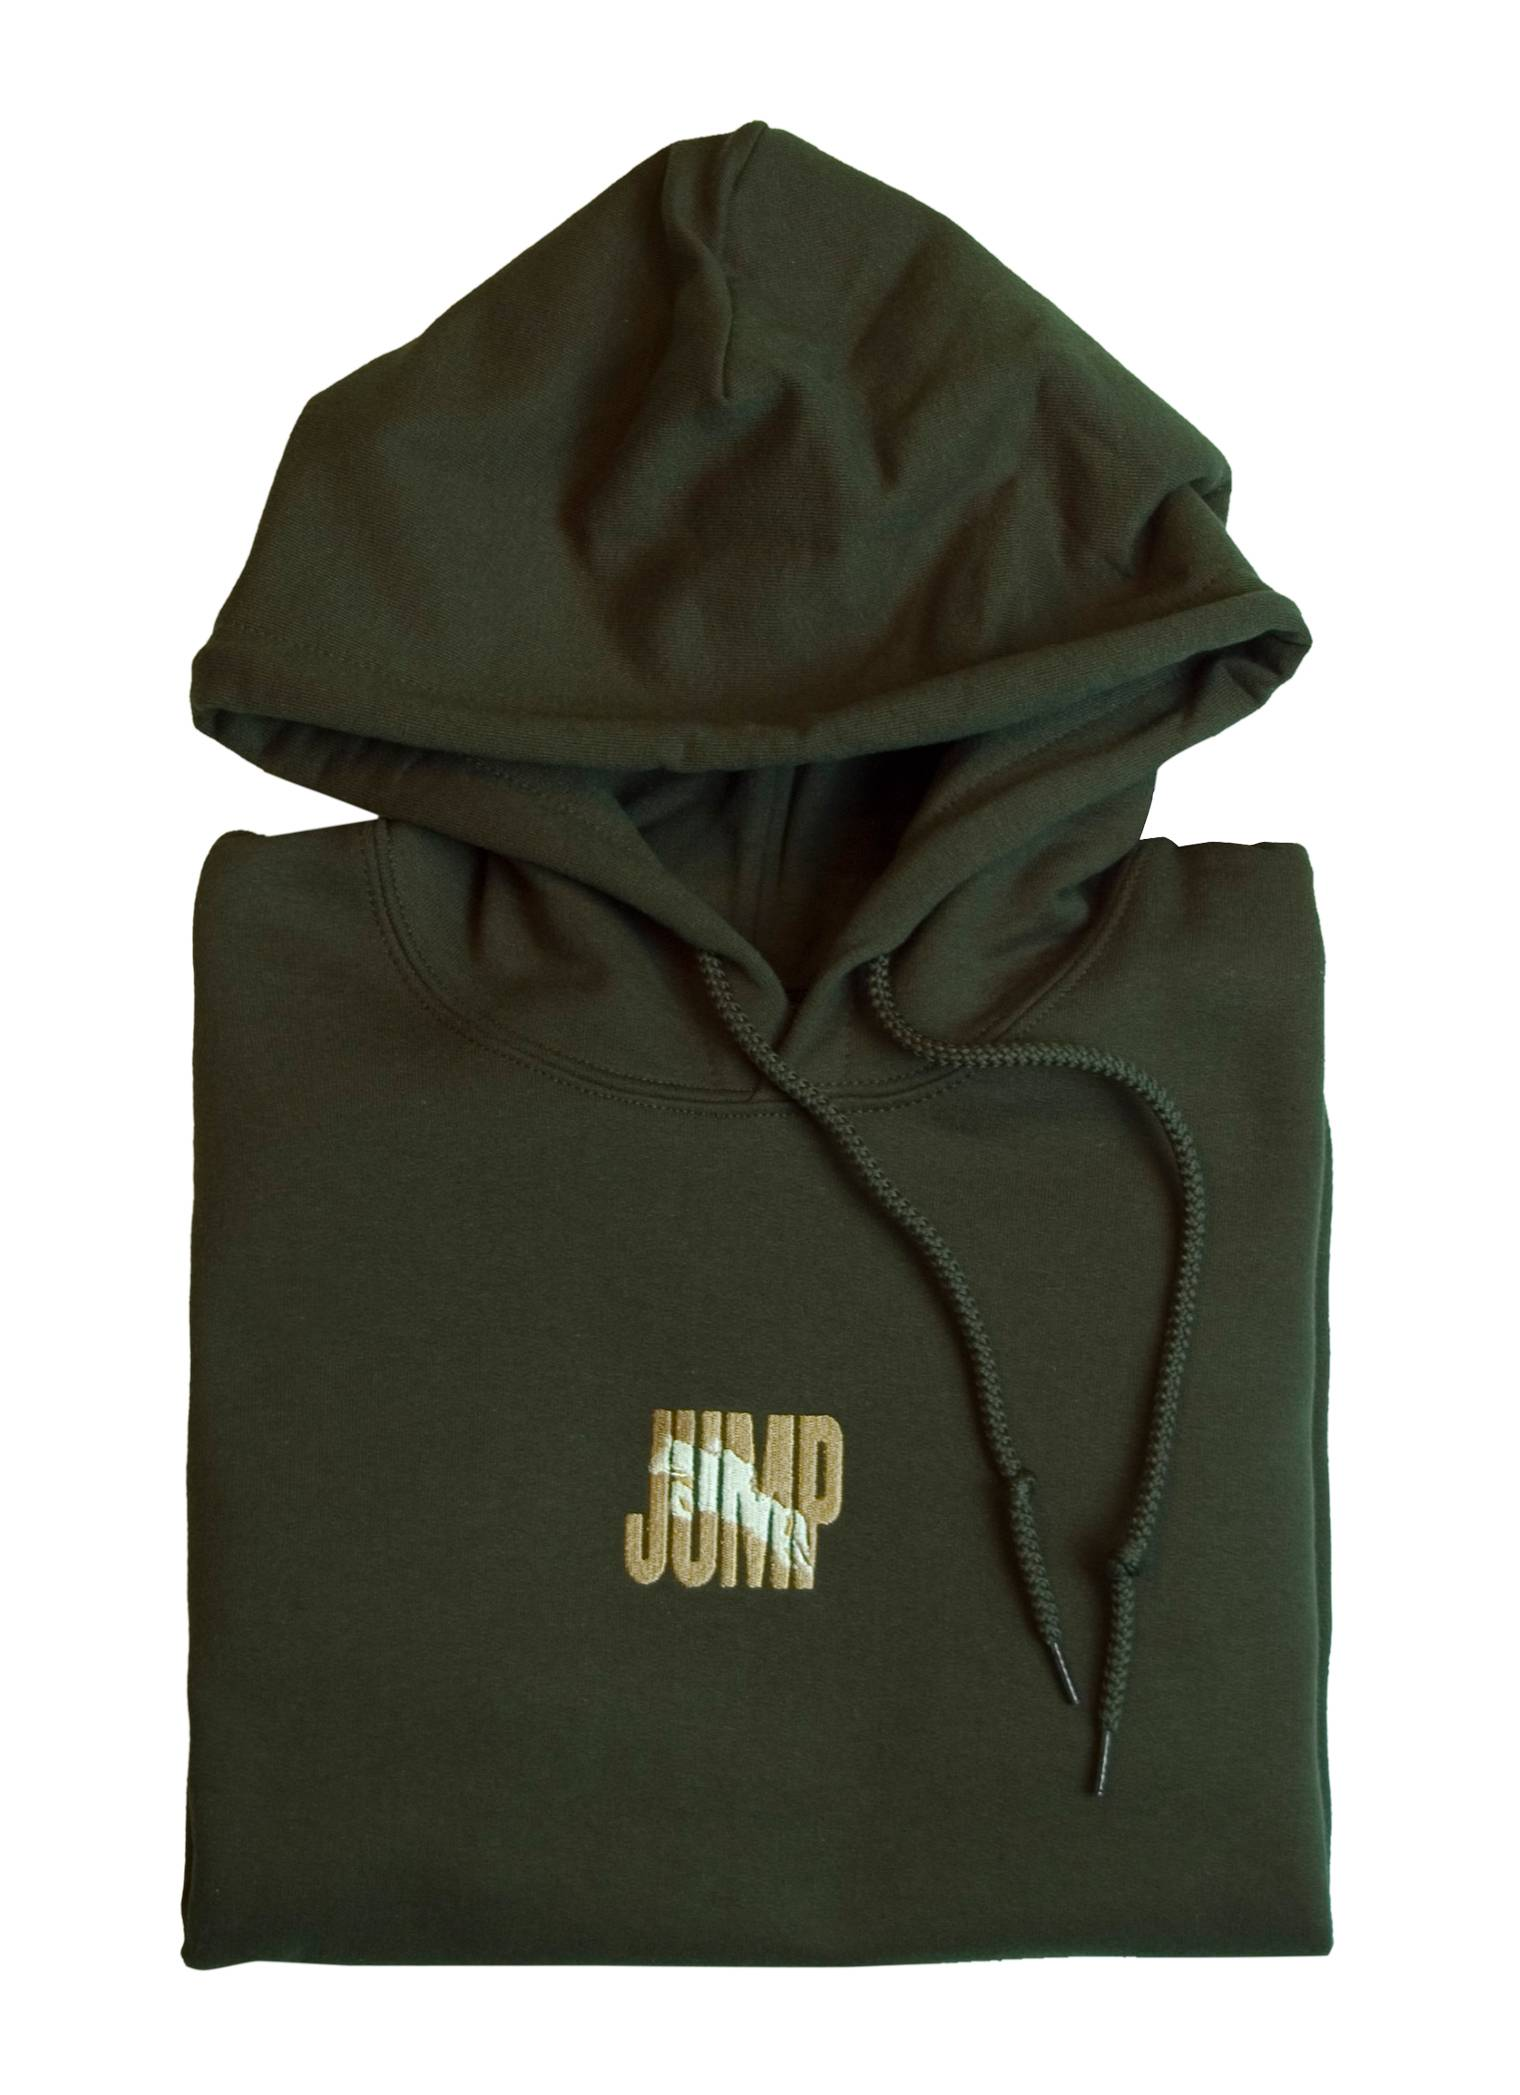 Stirrups Jump Embriodered Hooded Sweatshirt - Ladies